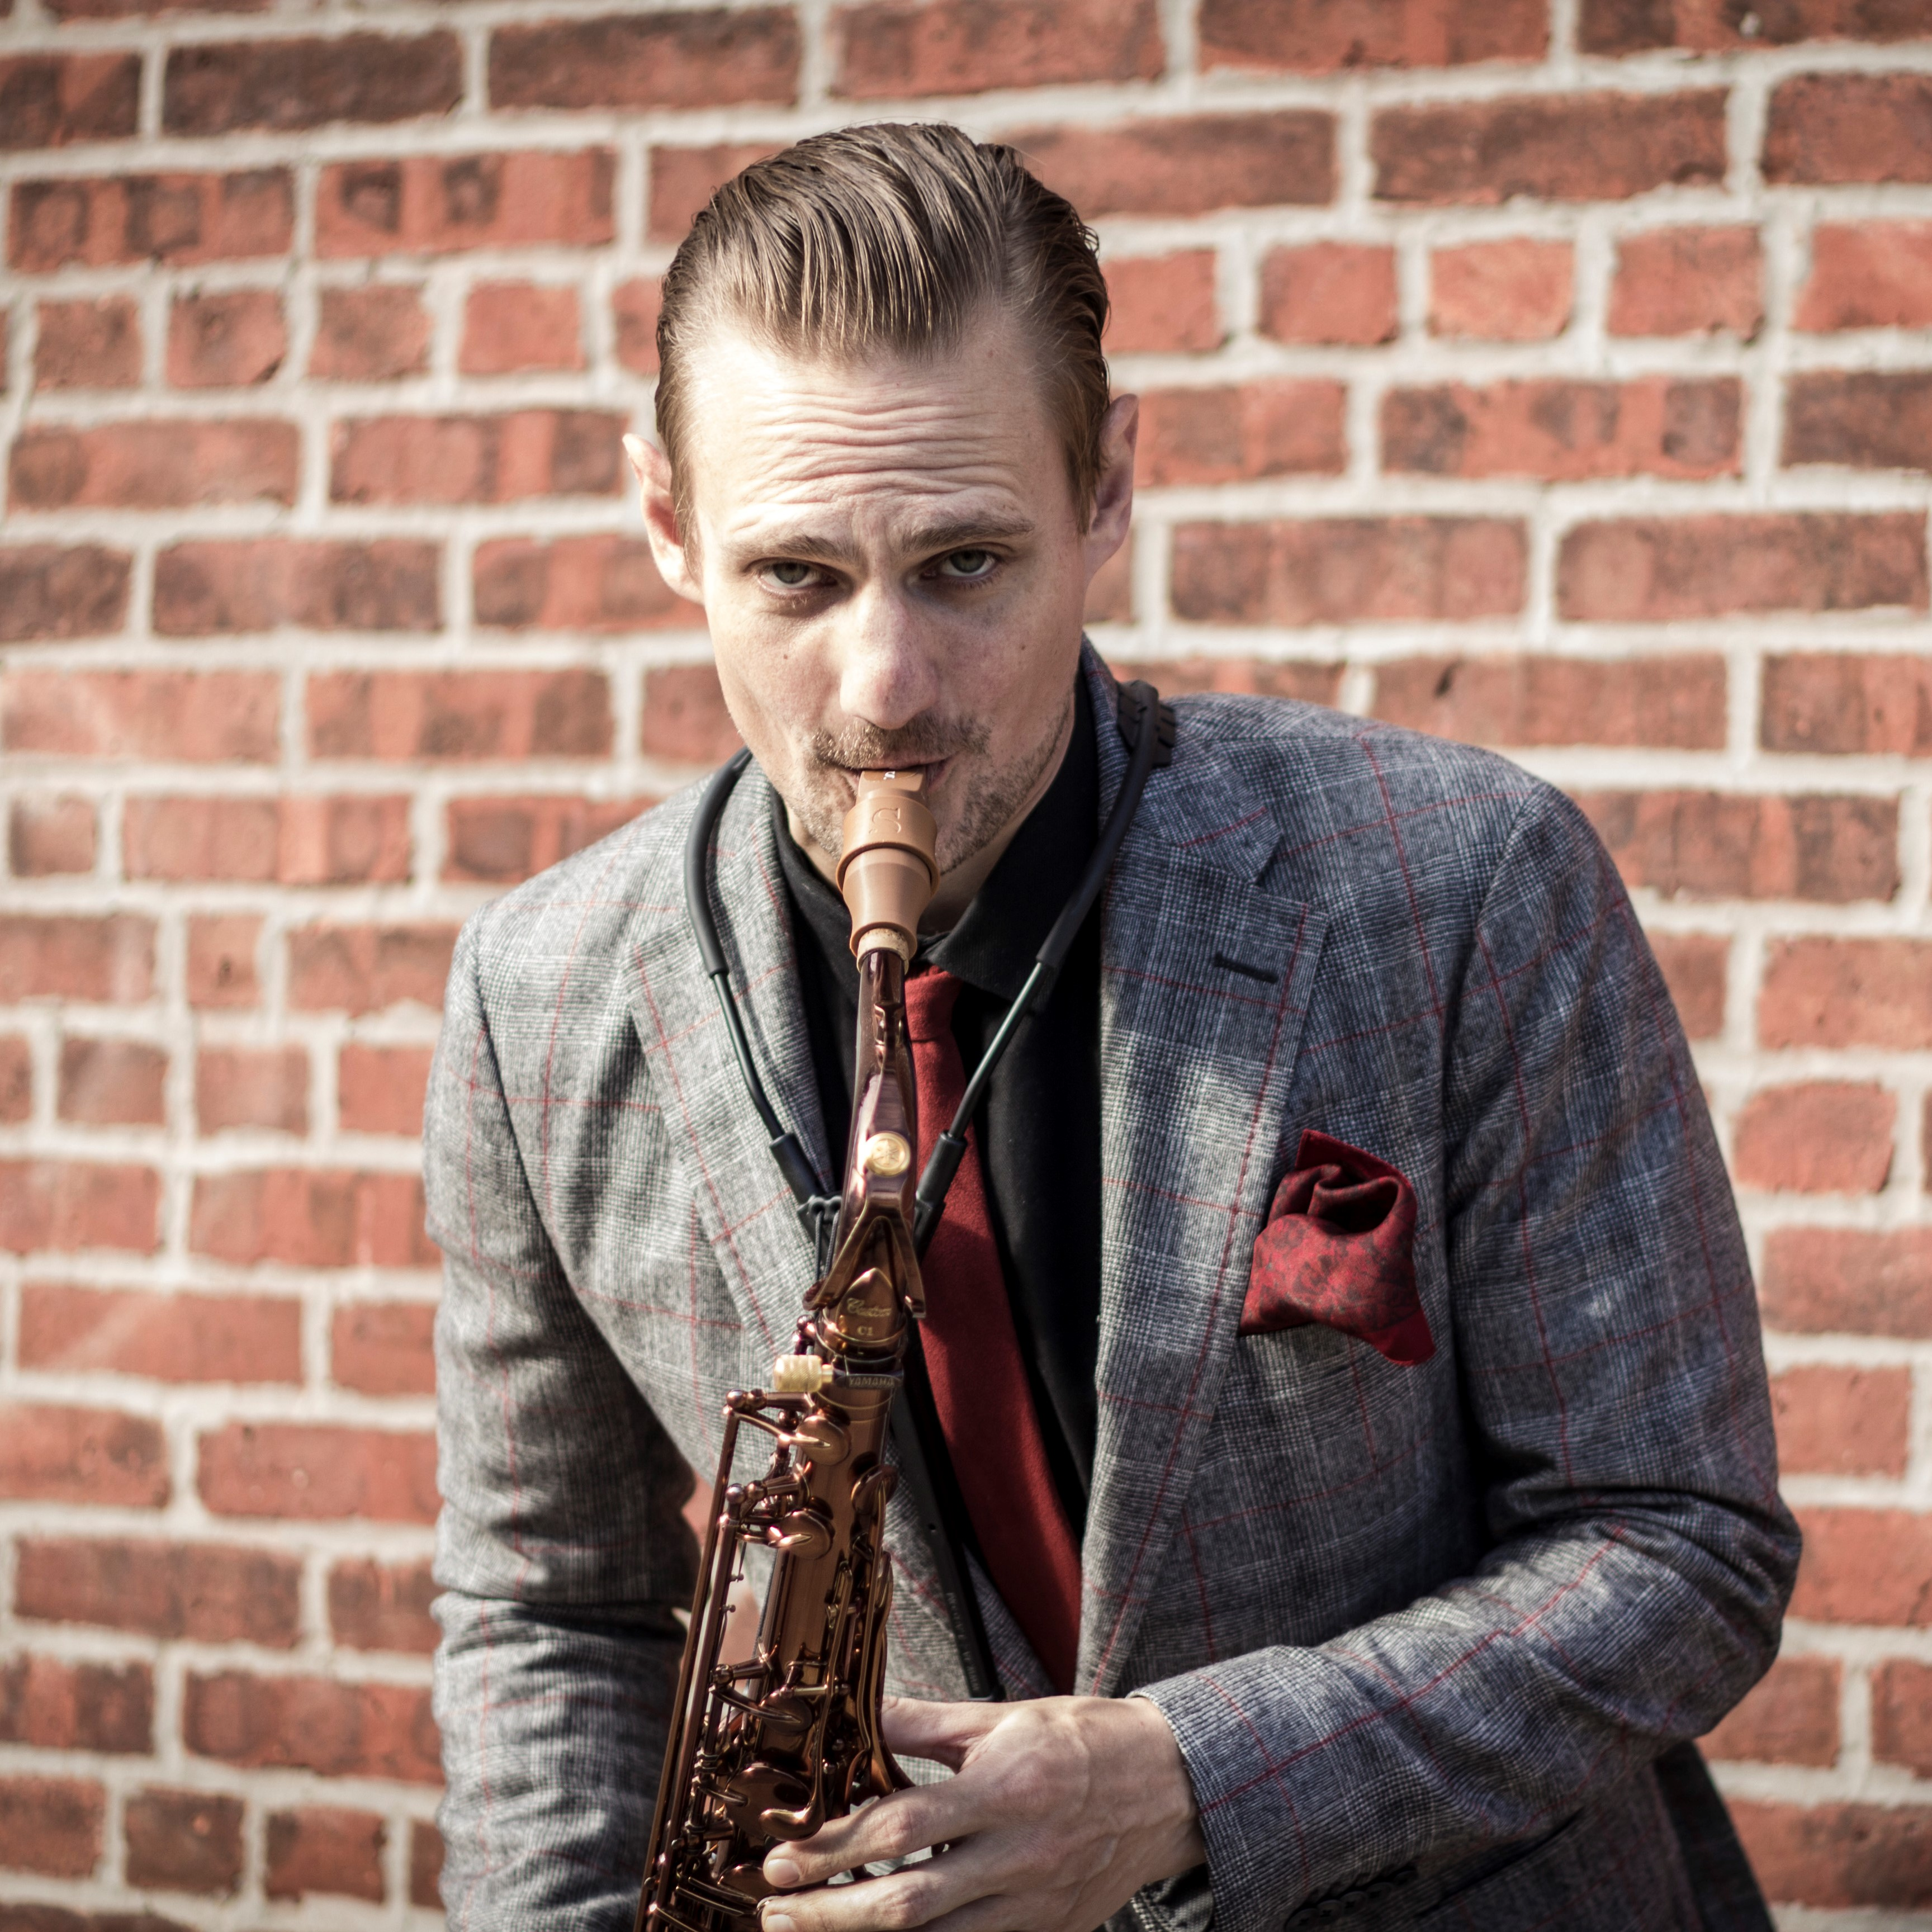 Steve Kortyka plays Syos mouthpieces for saxophone and clarinet